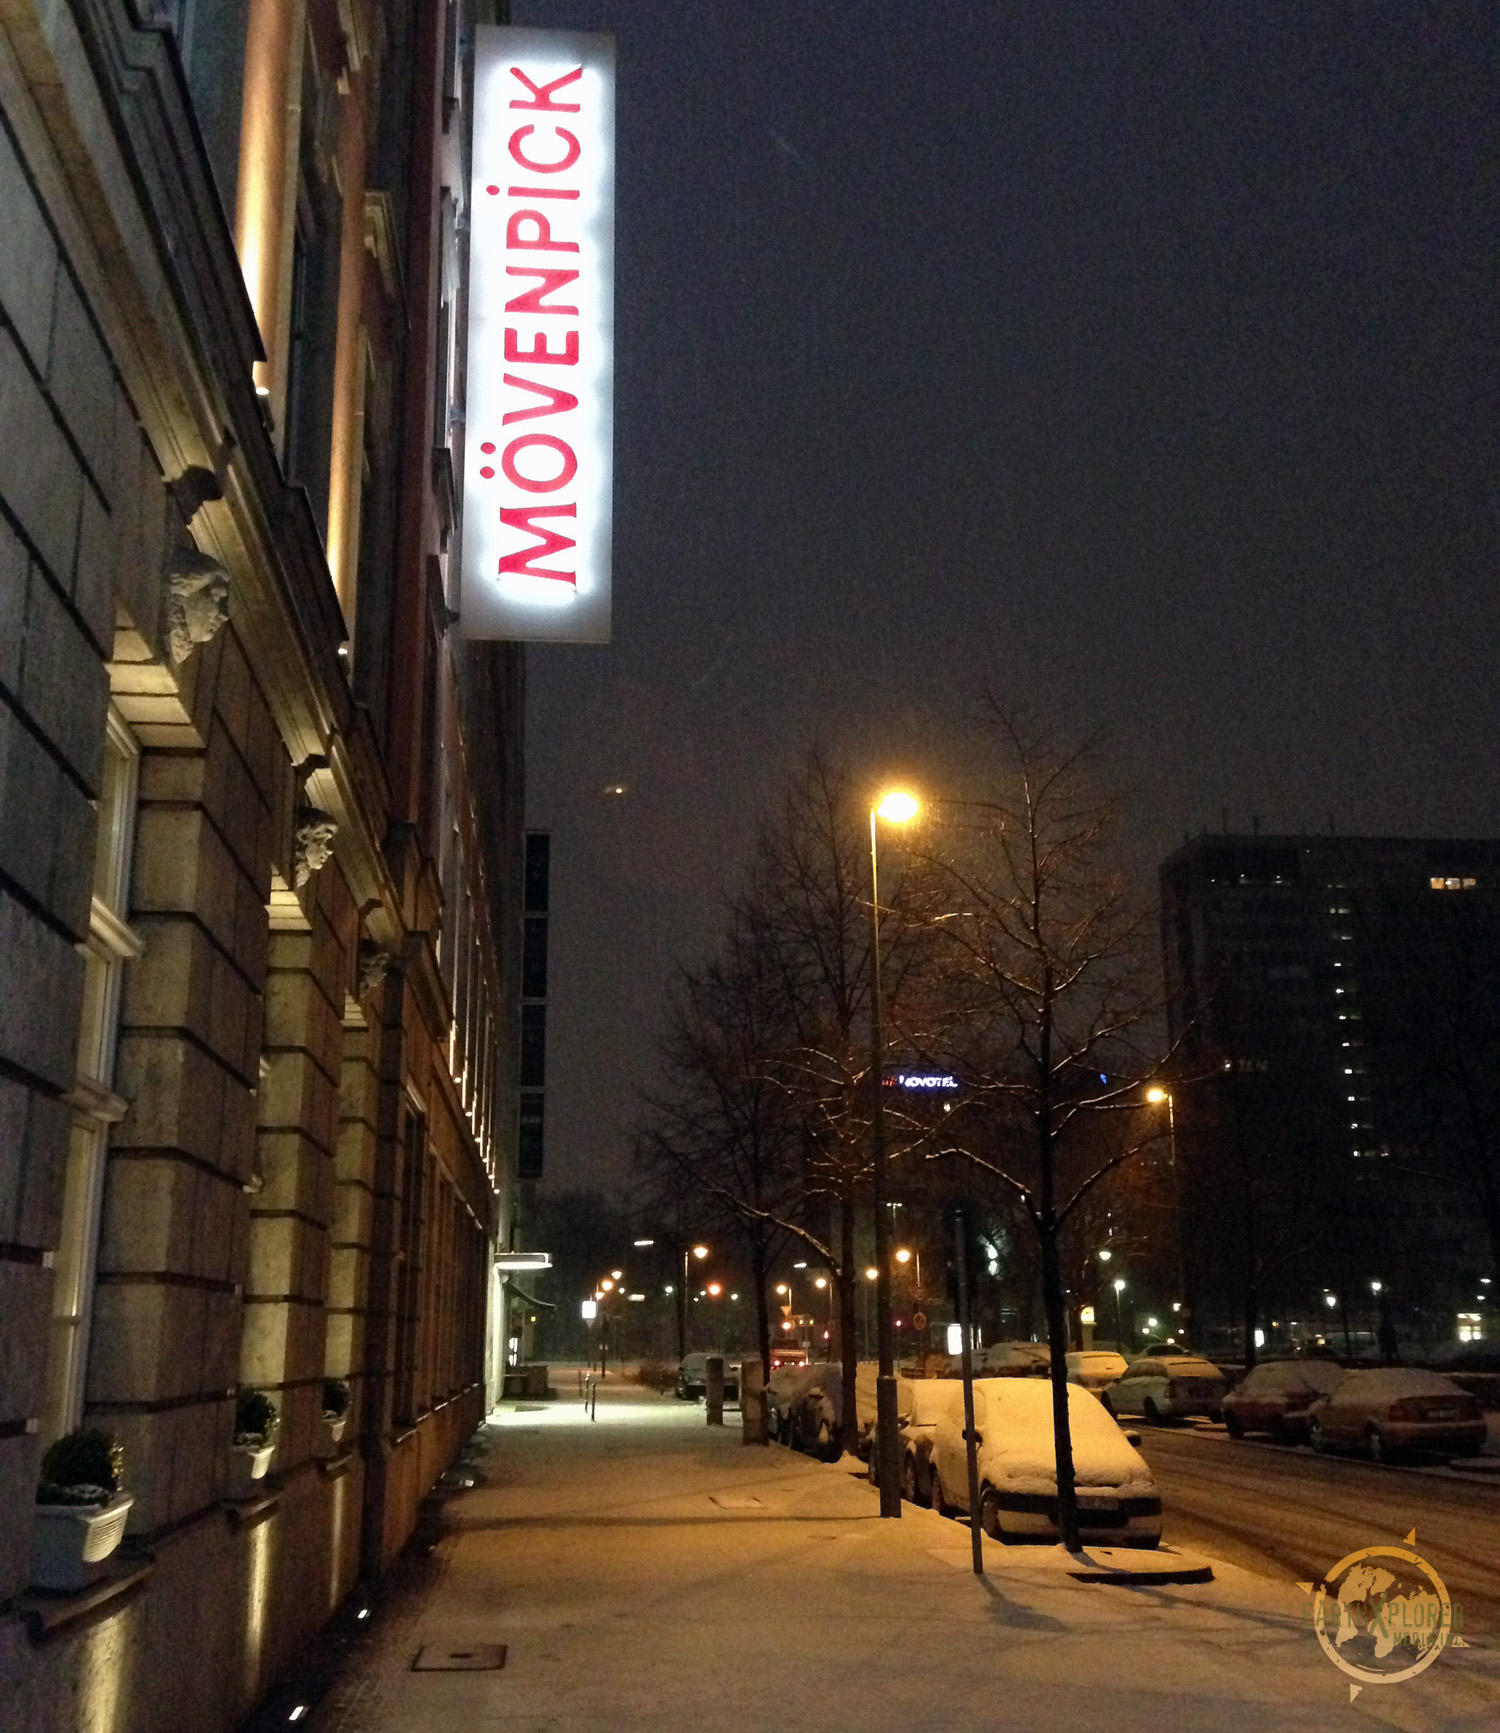 The snow starts to fall in Berlin